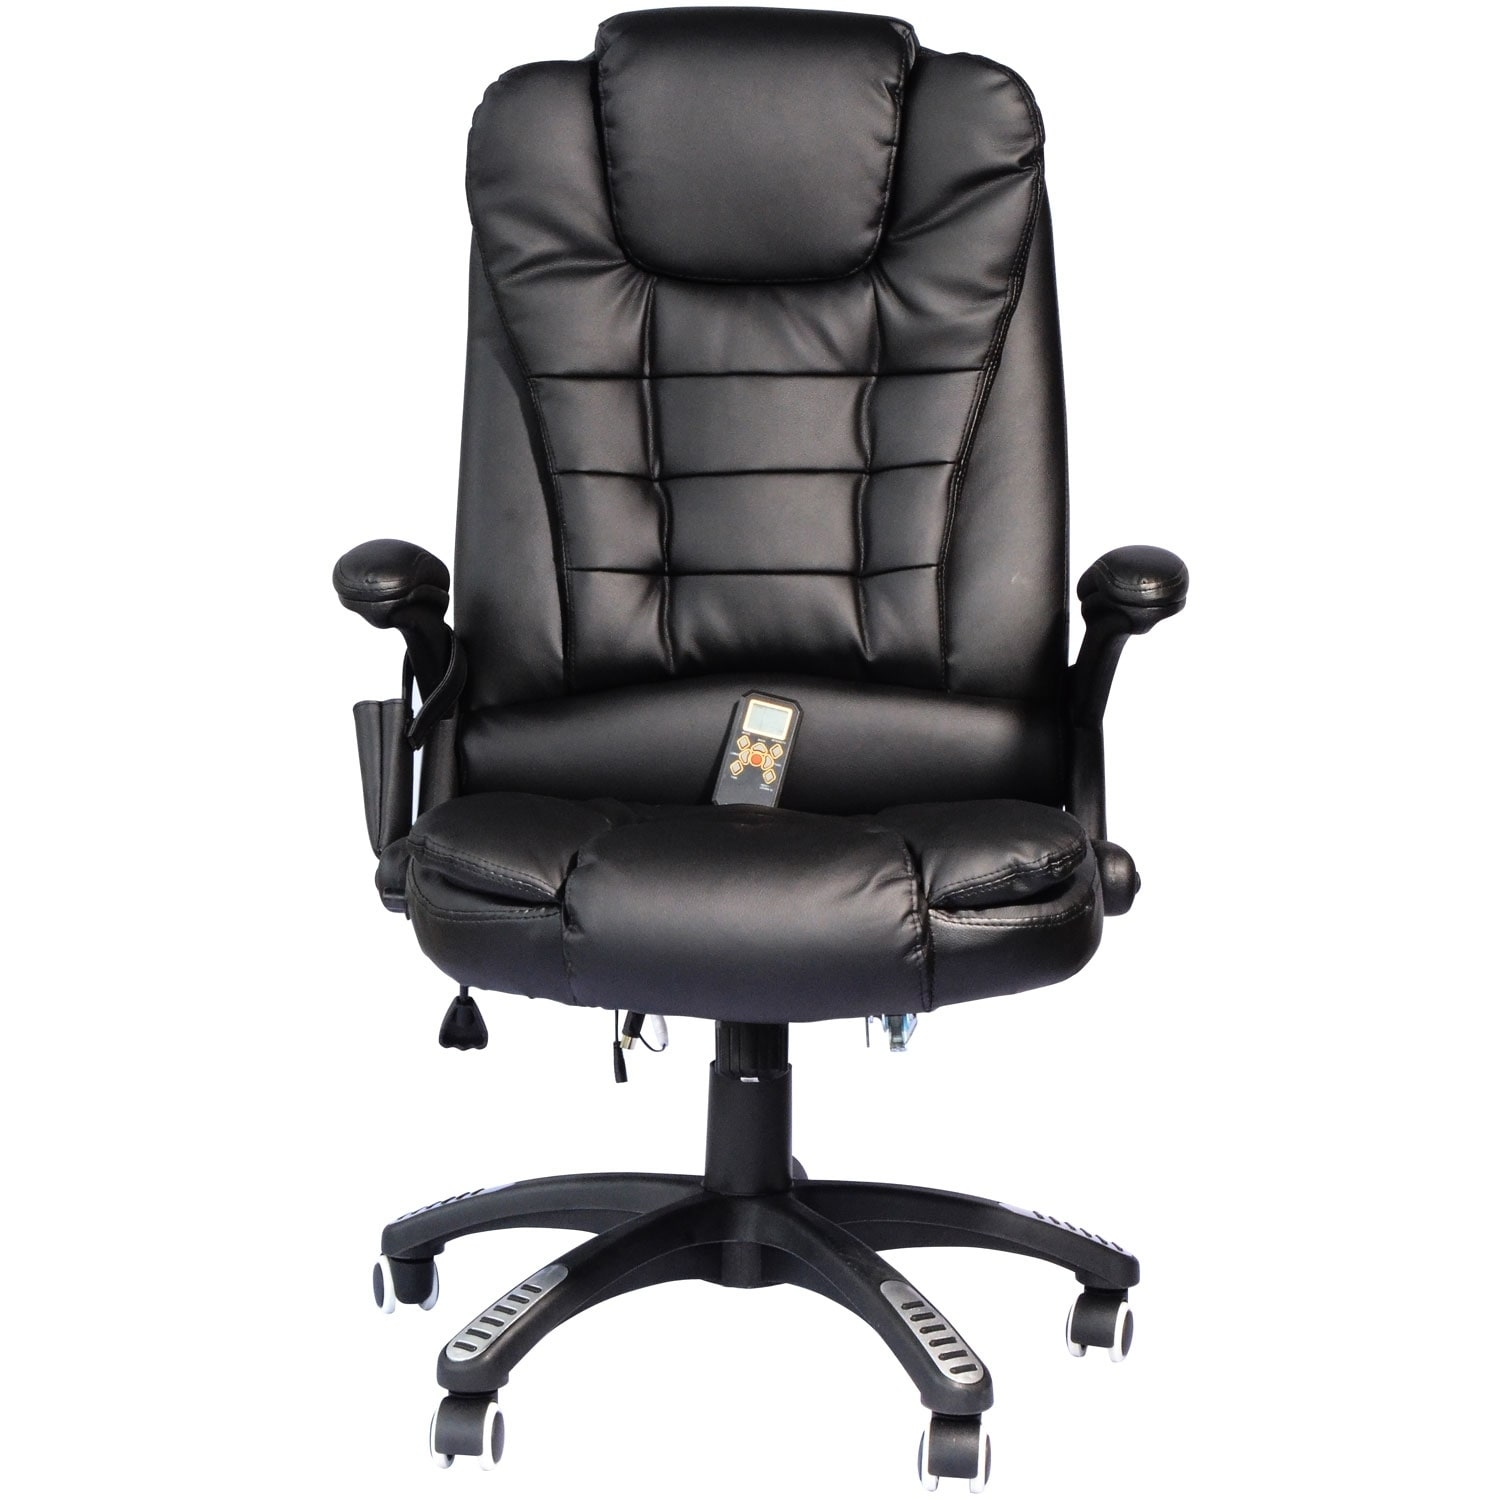 Homcom Executive Ergonomic Heated Vibrating Mage Office Chair W Remote Control Black Free Shipping Today 18088239